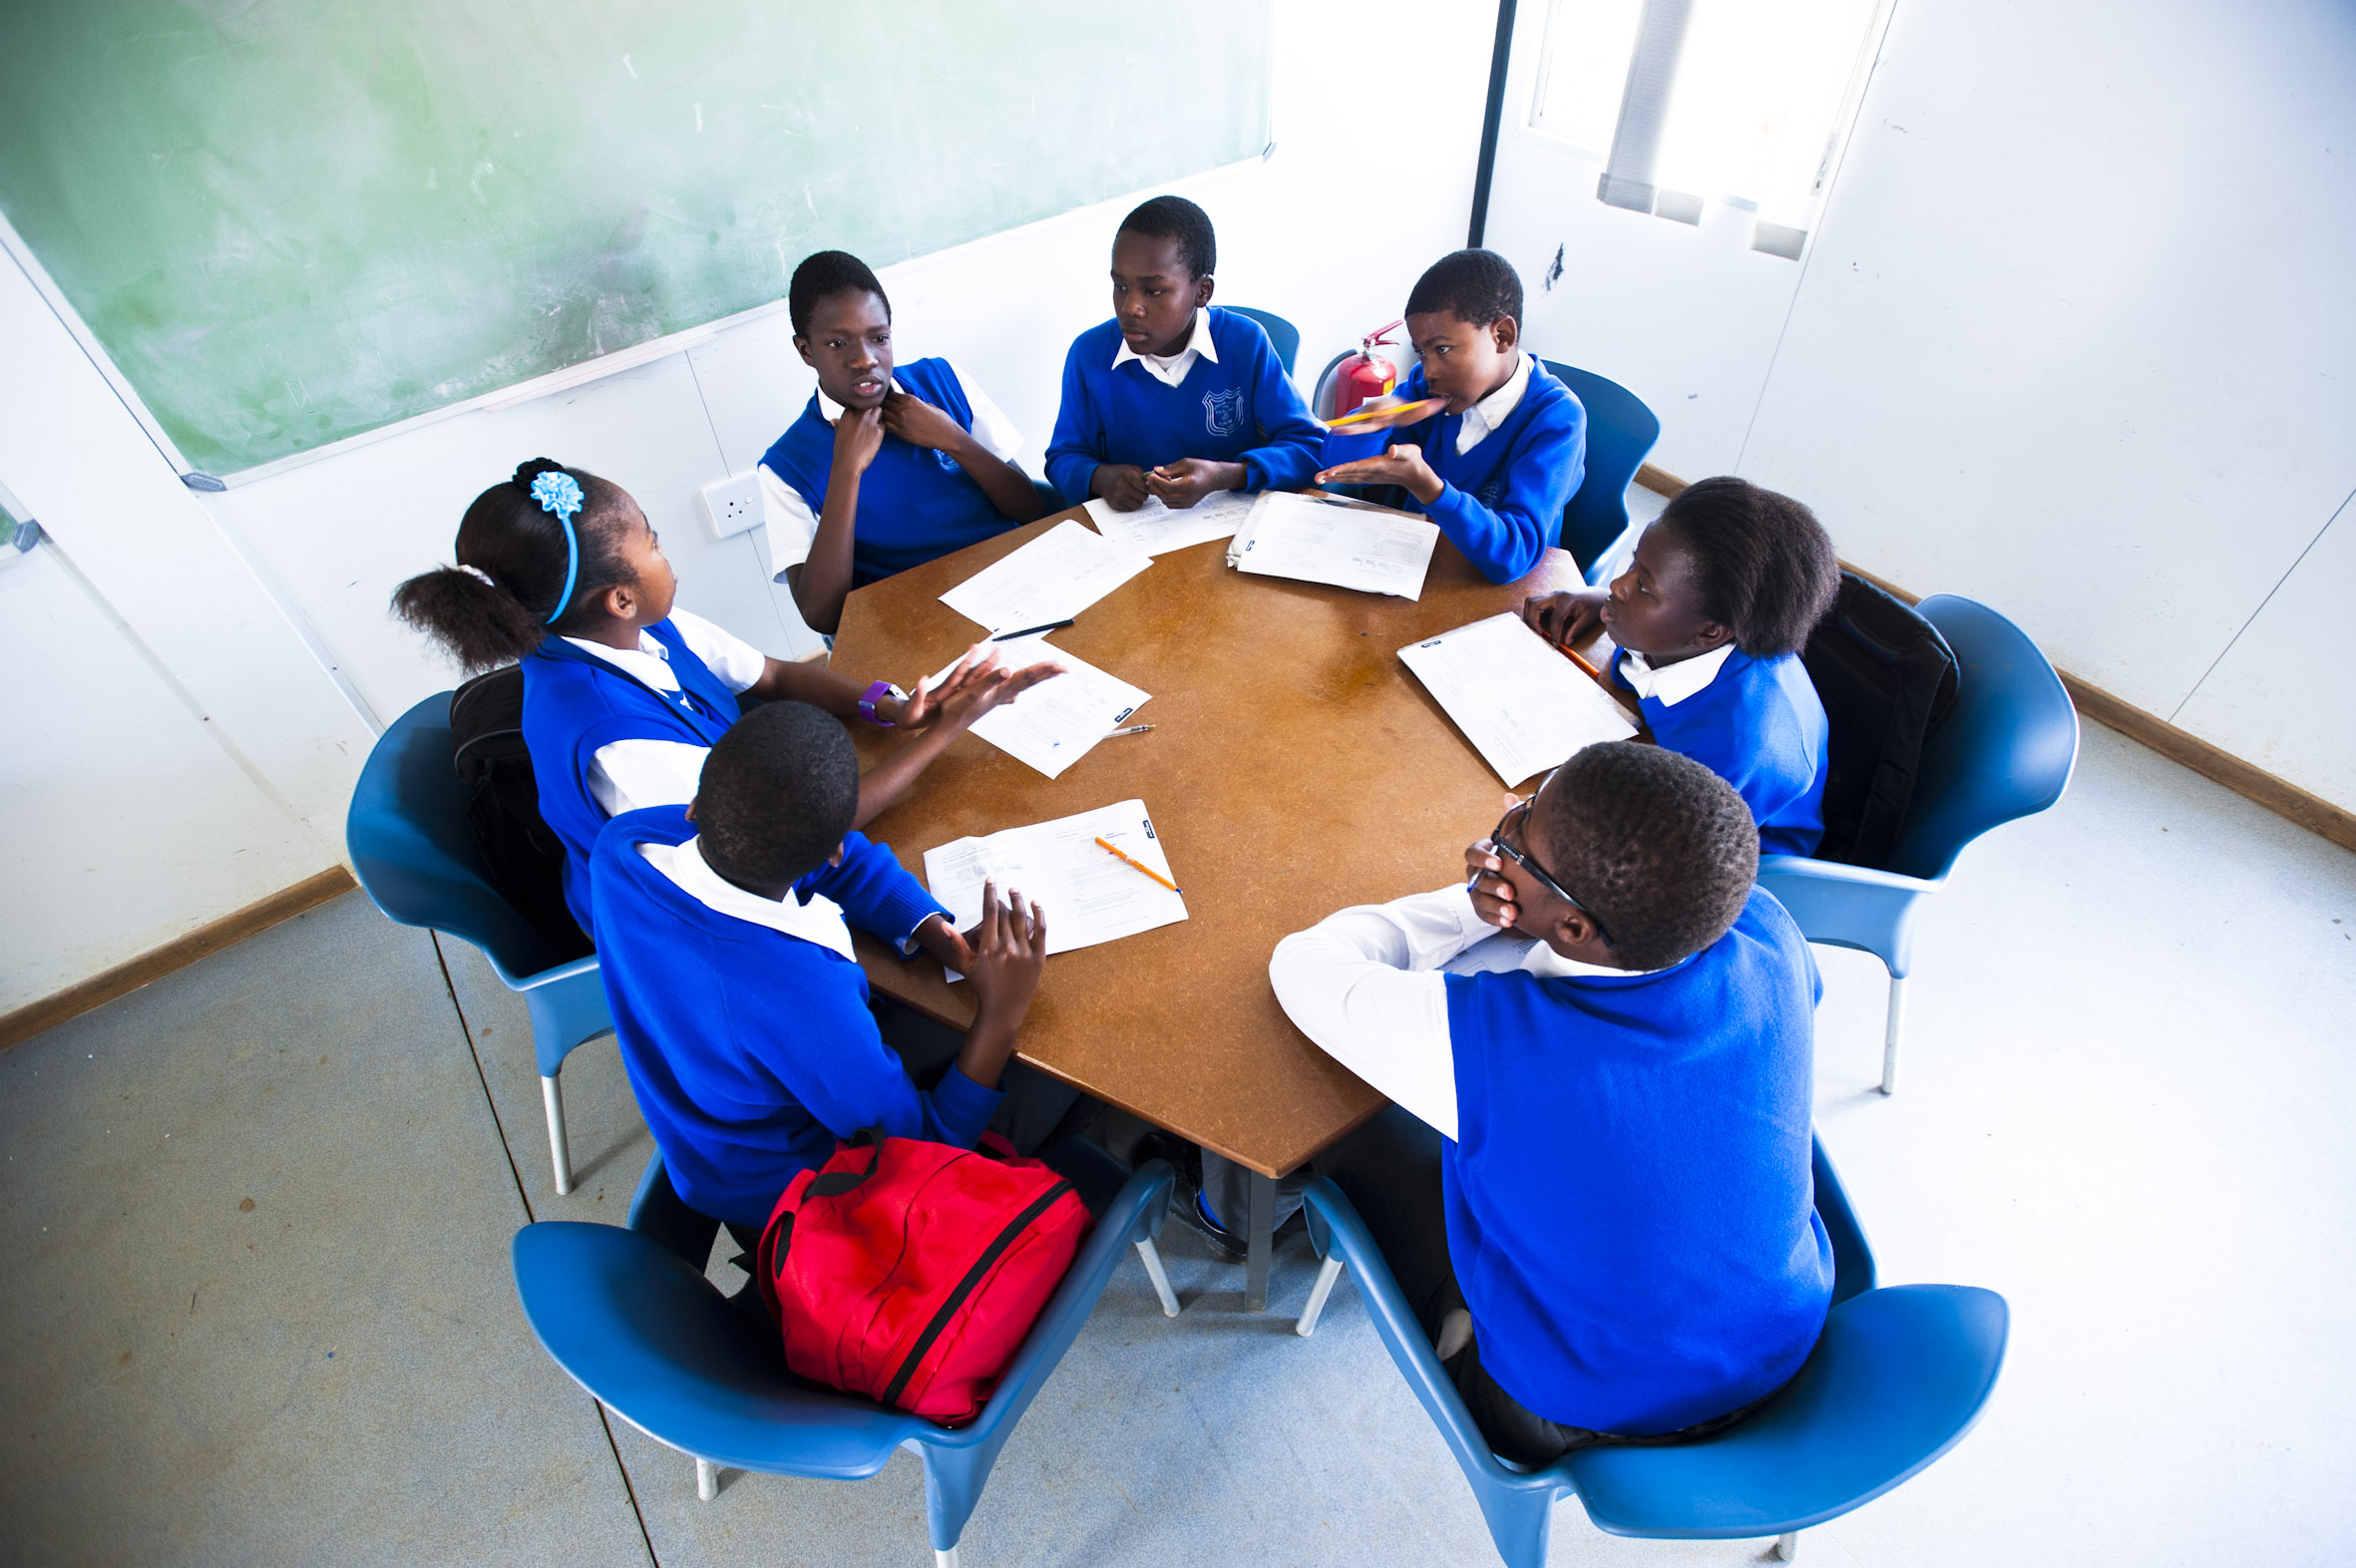 Pupils at Tsakanes African School for Excellence work together in small groups. Delwyn Verasamy, MG